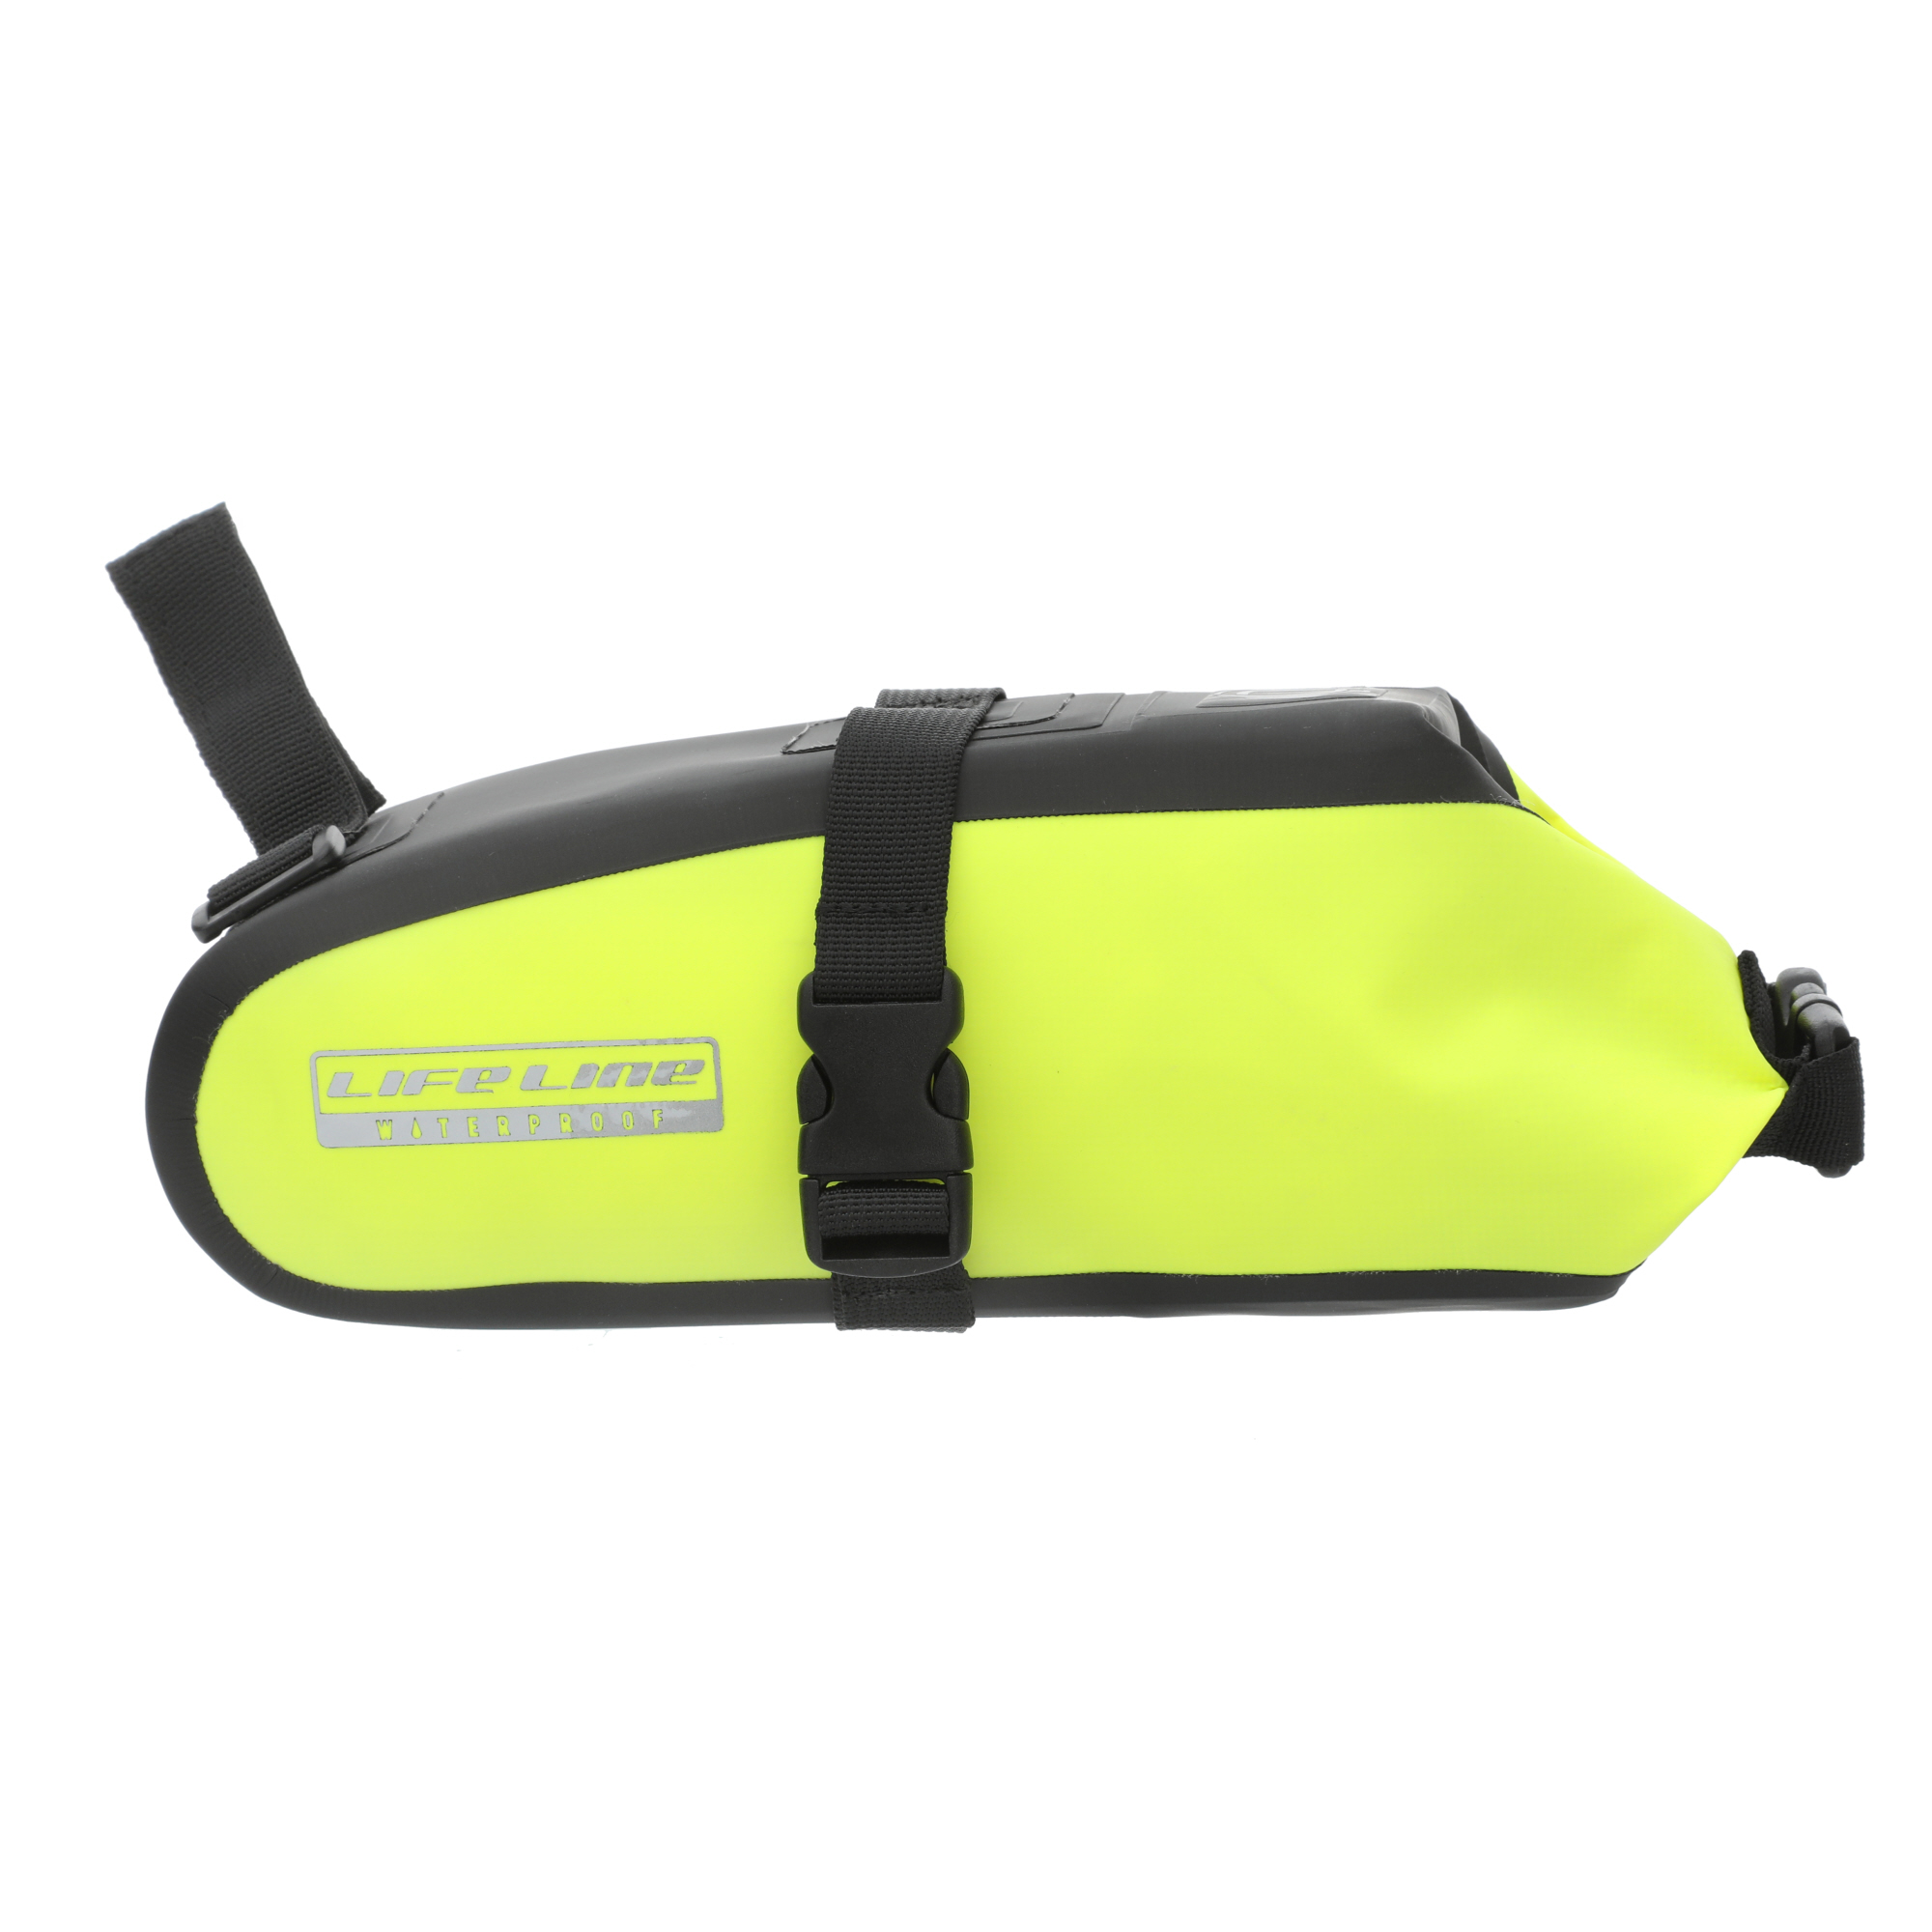 LifeLine Commute Waterproof Rolltop Saddlebag | Saddle bags